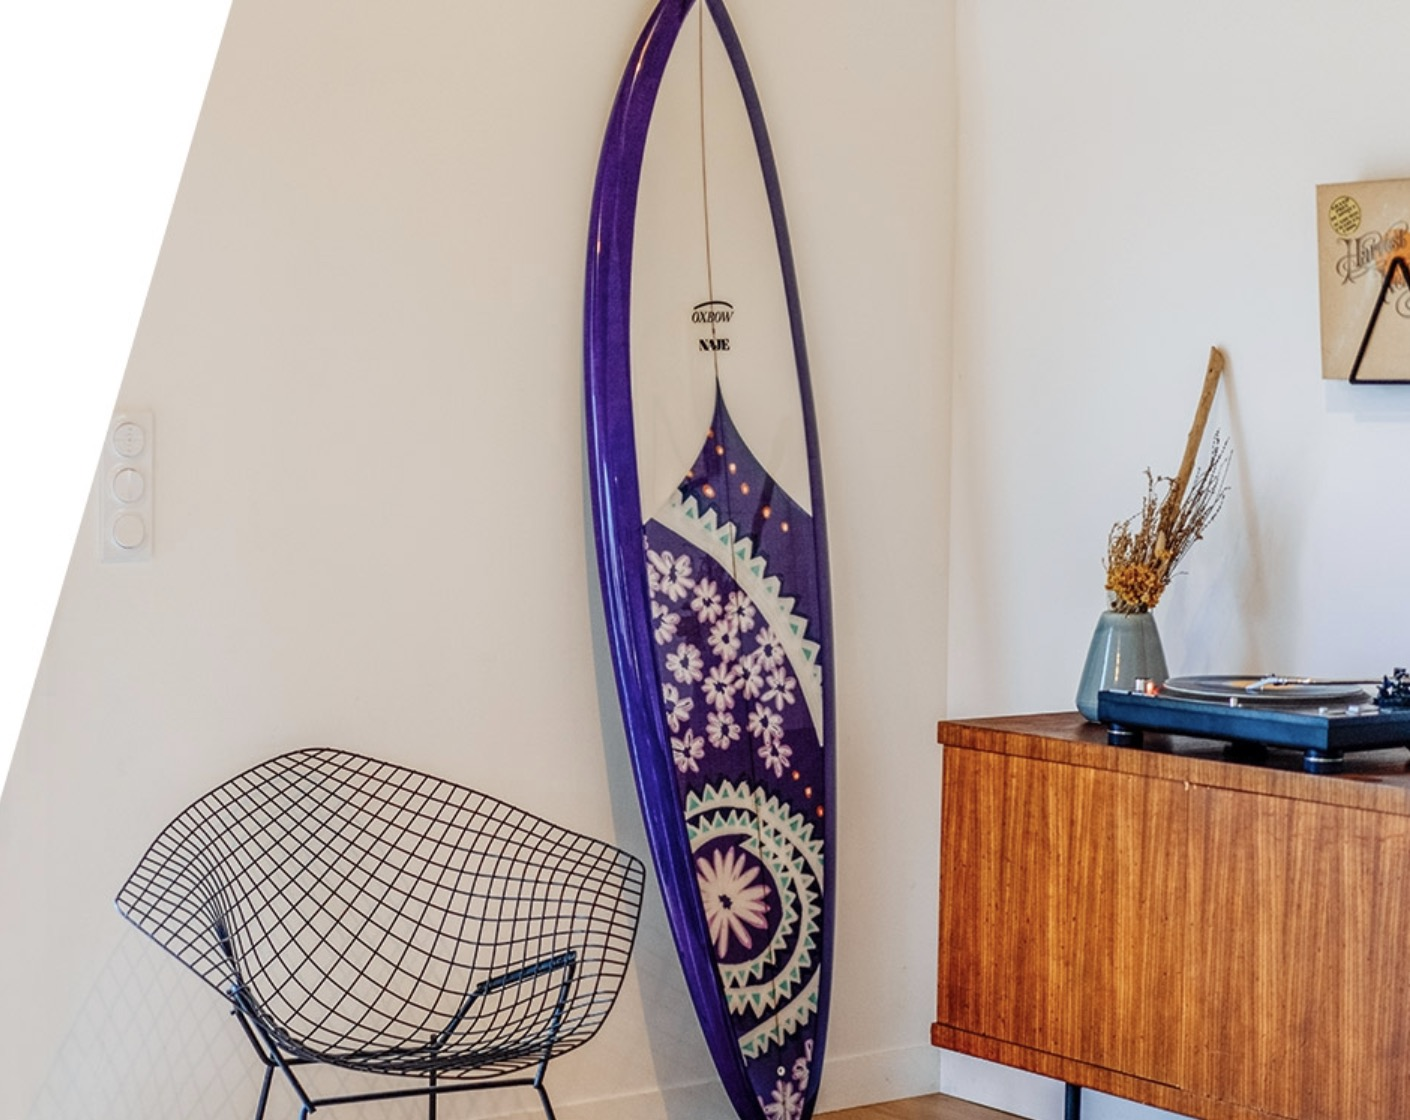 Code promo Oxbow : Une planche de surf Naje x Oxbow Collector à gagner